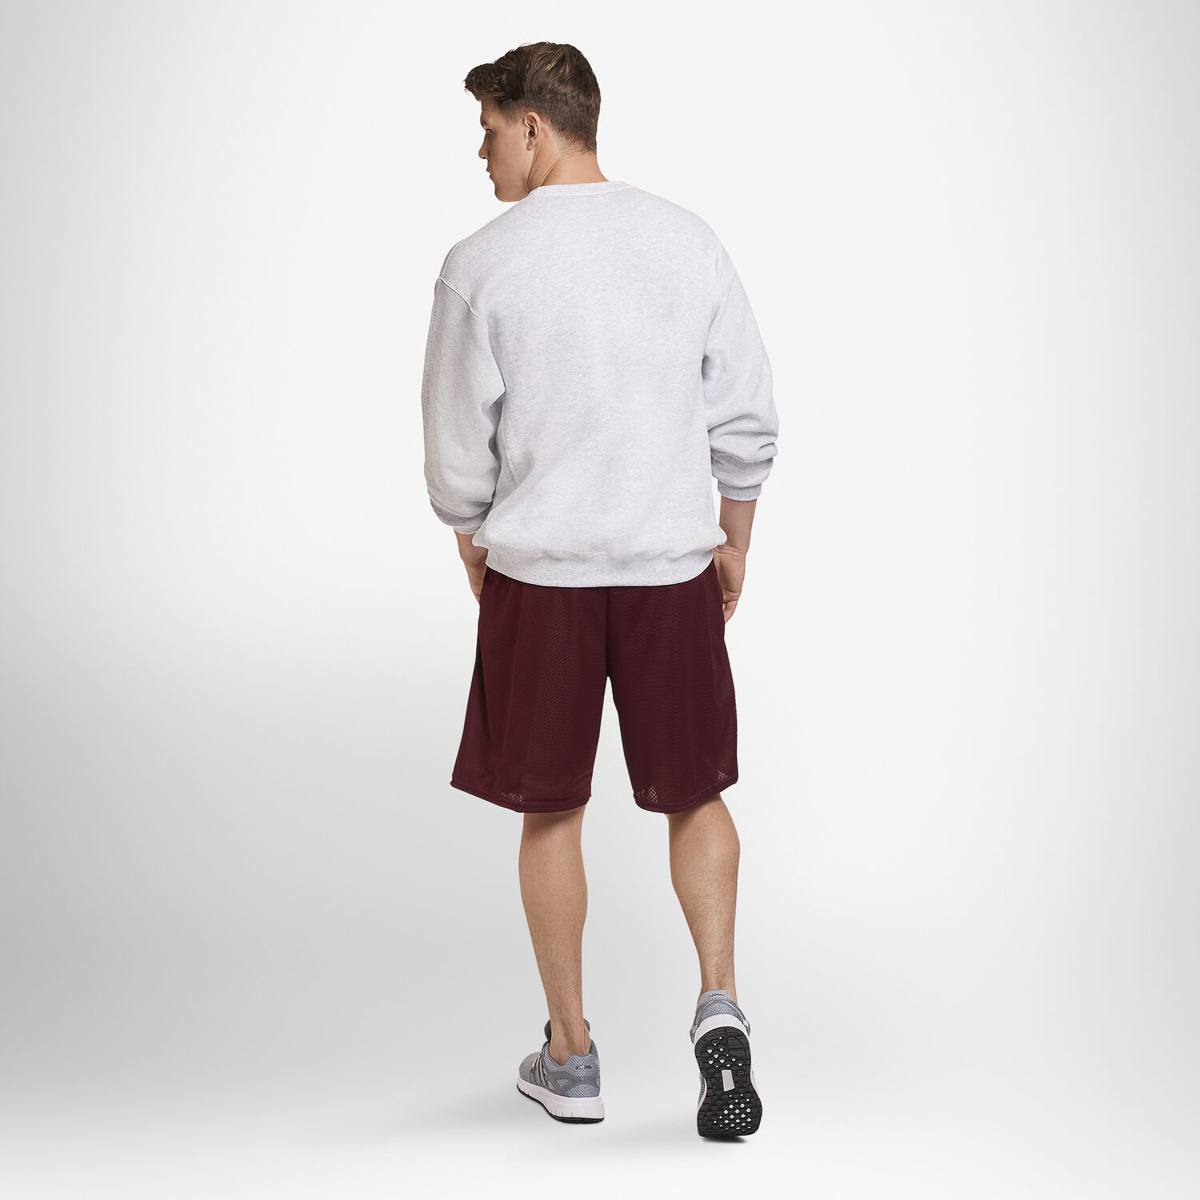 thumbnail 12 - Russell-Athletic-Mens-Shorts-With-Pockets-Mesh-Moisture-Wicking-Gym-Activewear